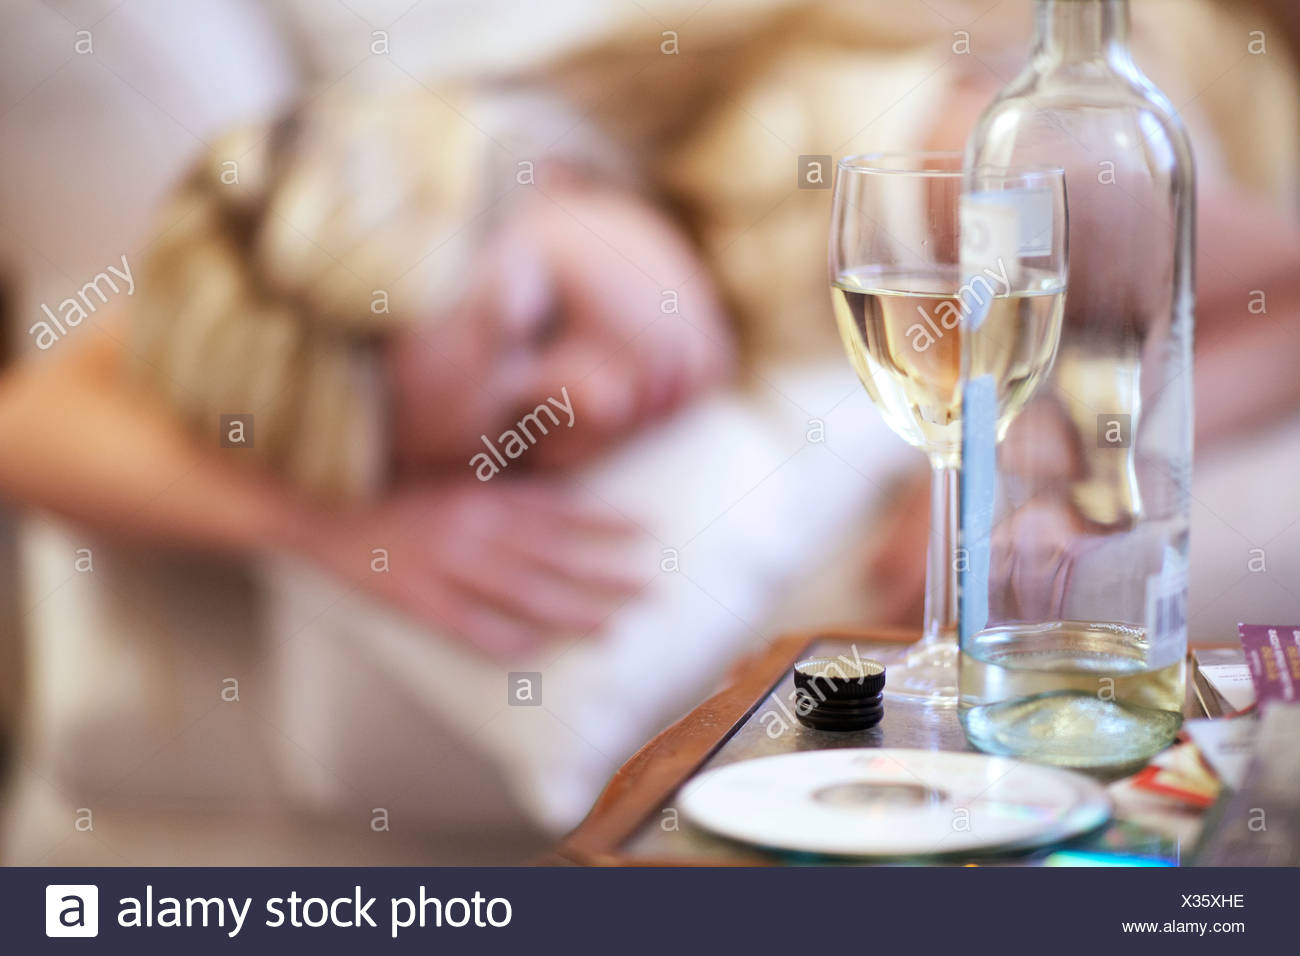 Young woman, asleep on sofa after drinking - Stock Image